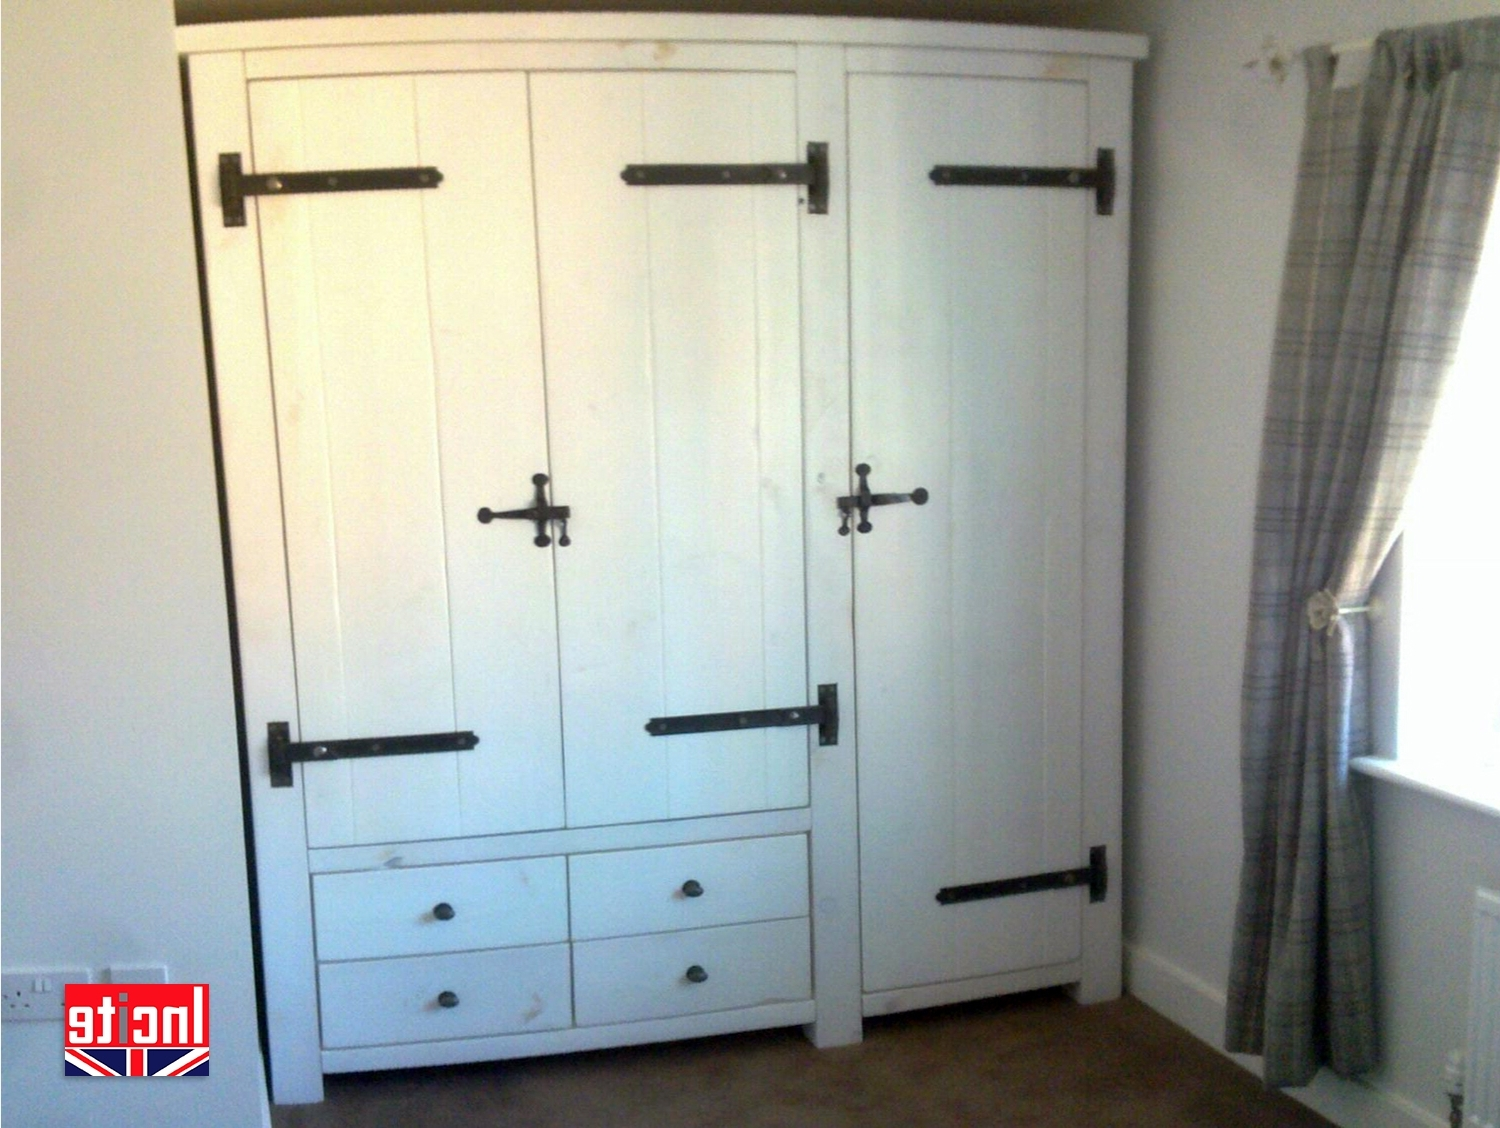 Whitewash Wardrobes Regarding Current Derbyshire Bespoke Plank Whitewashed Combination Wardrobe (View 14 of 15)